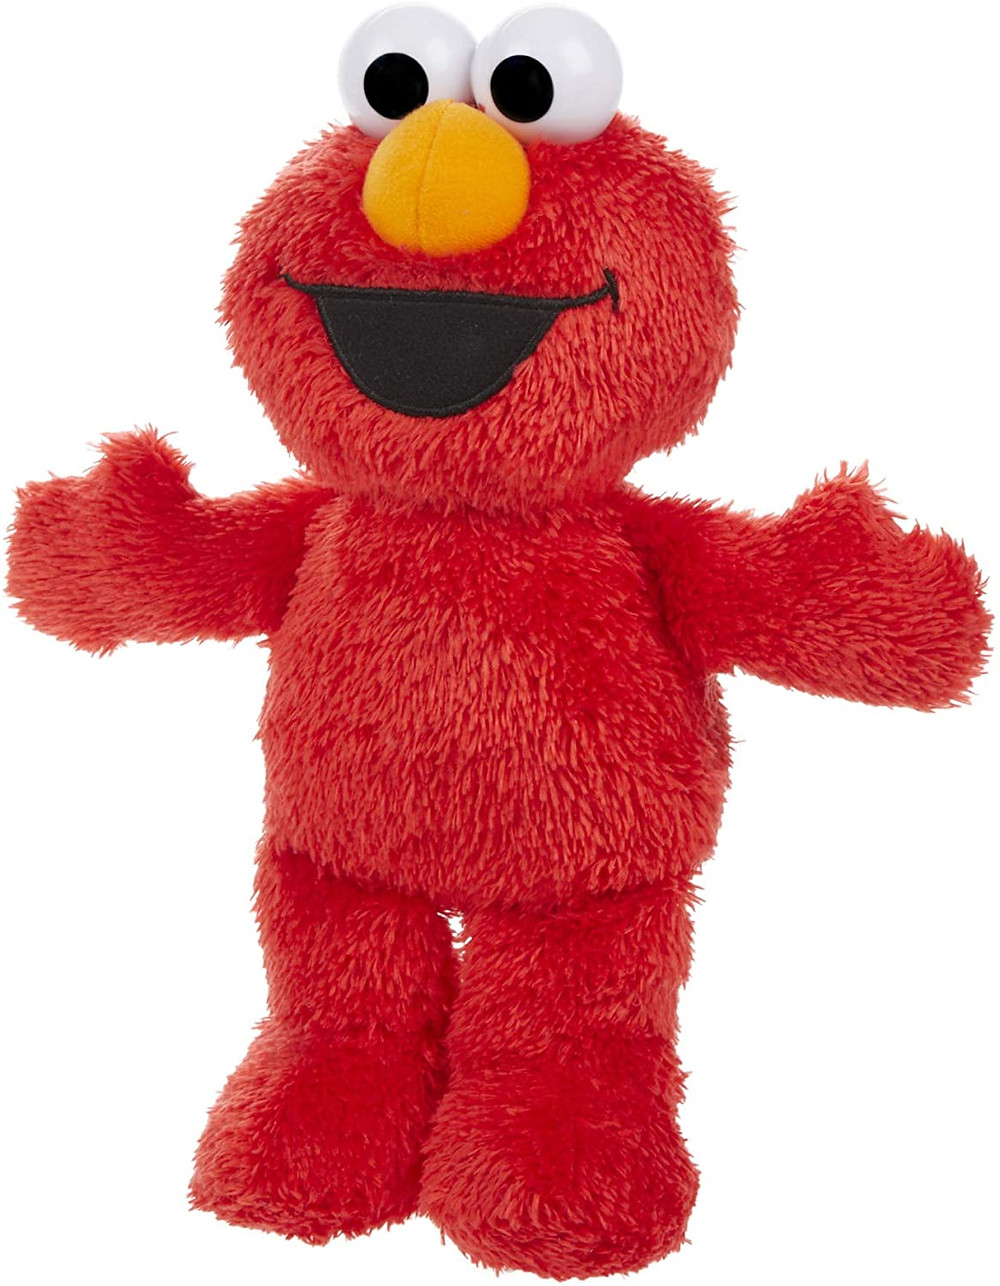 Elmo Sesame street plush toy doll red happy smiling for kids